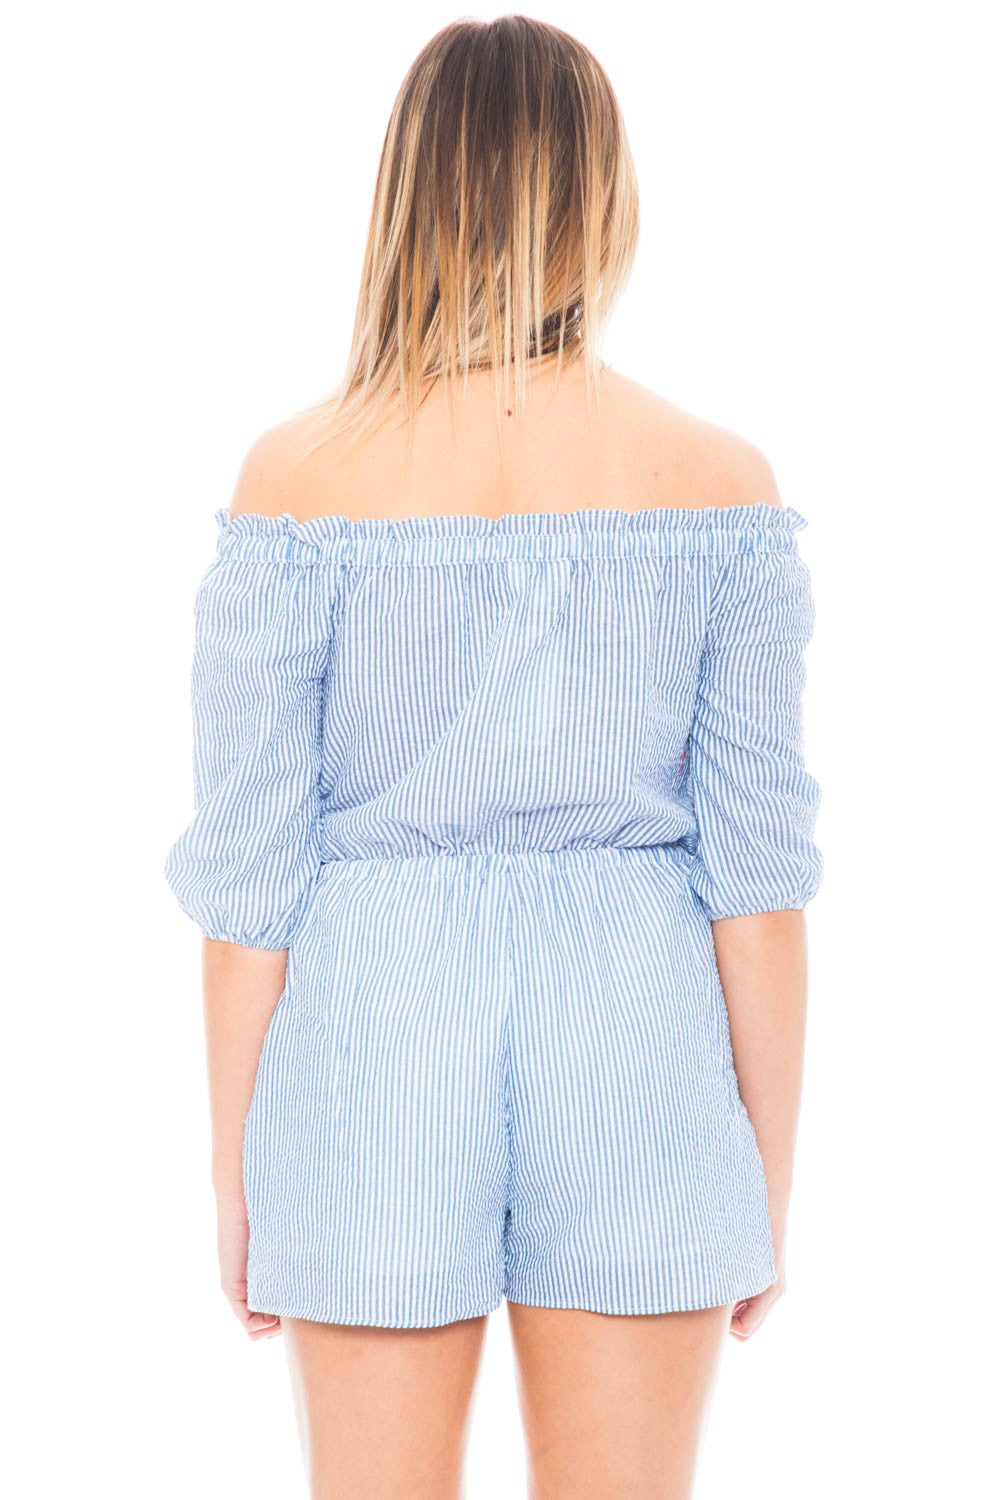 Romper - Seersucker Off Shoulder Romper with Pockets by Everly